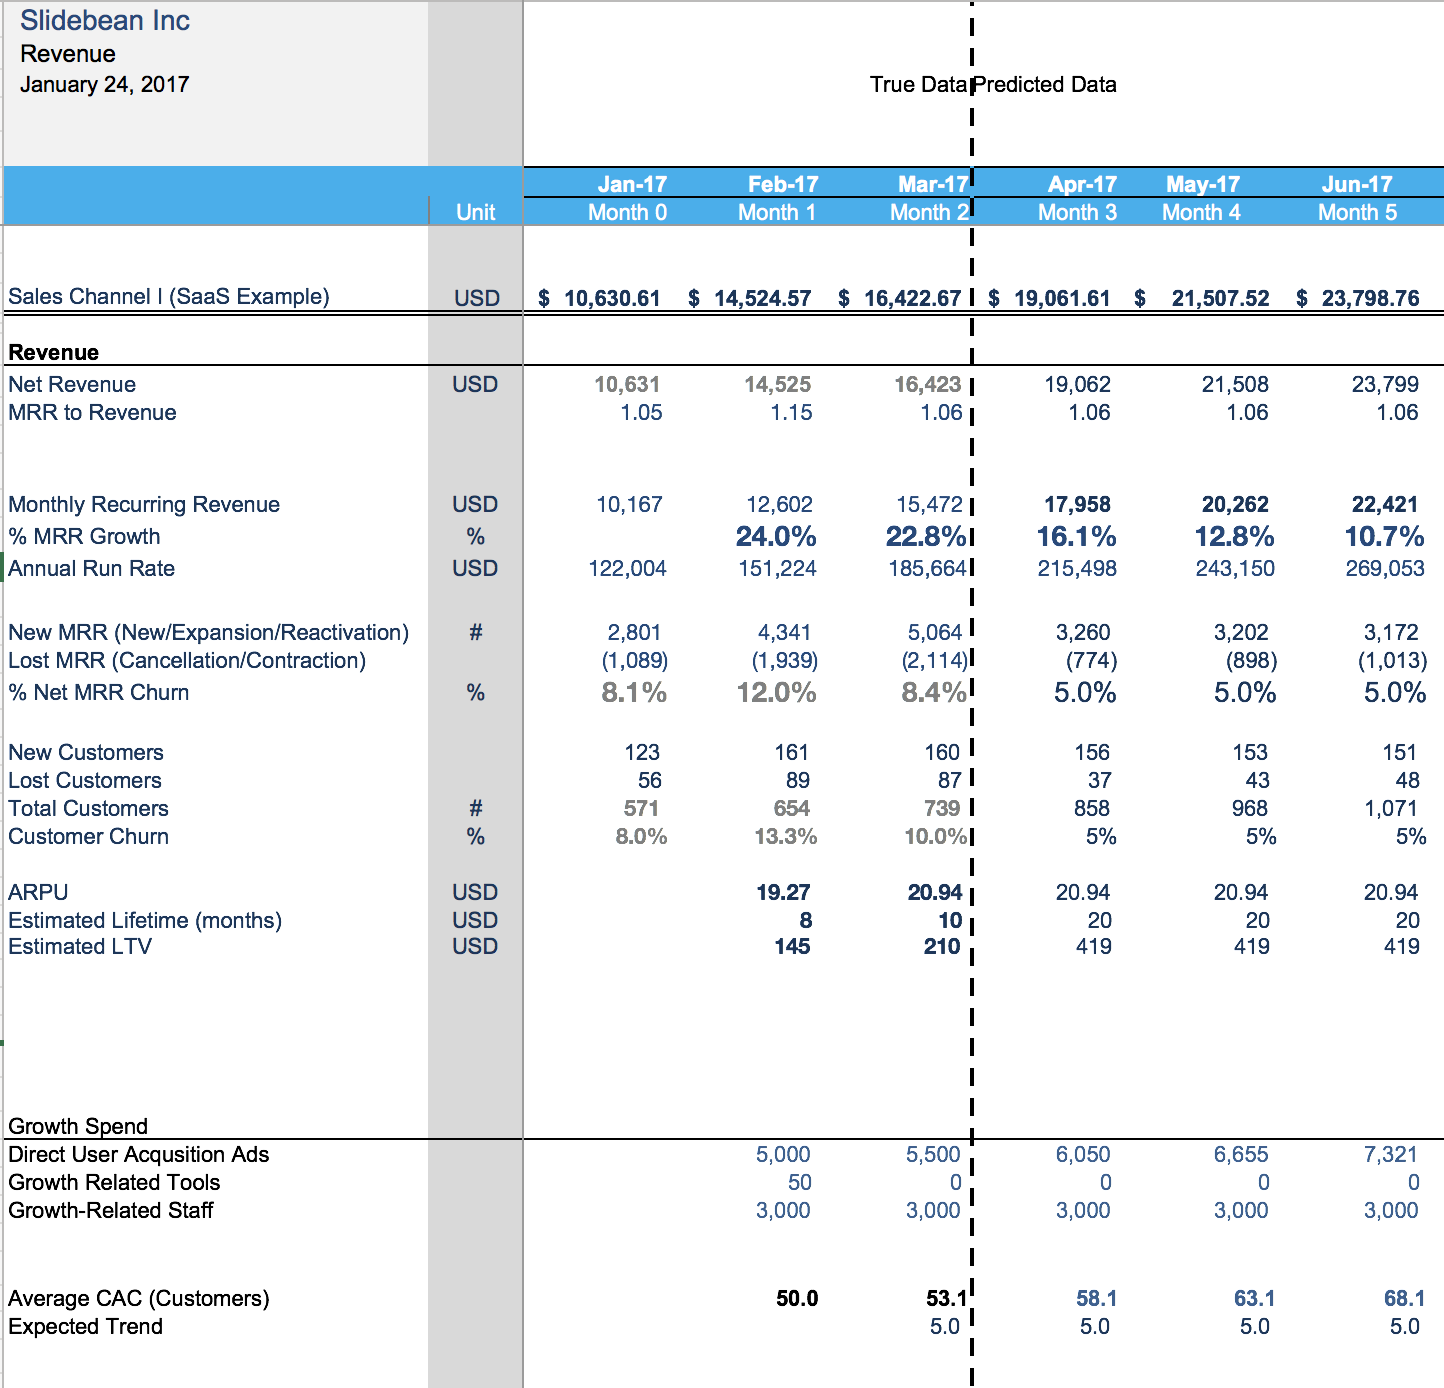 Financial Modeling for startups: the spreadsheet that made